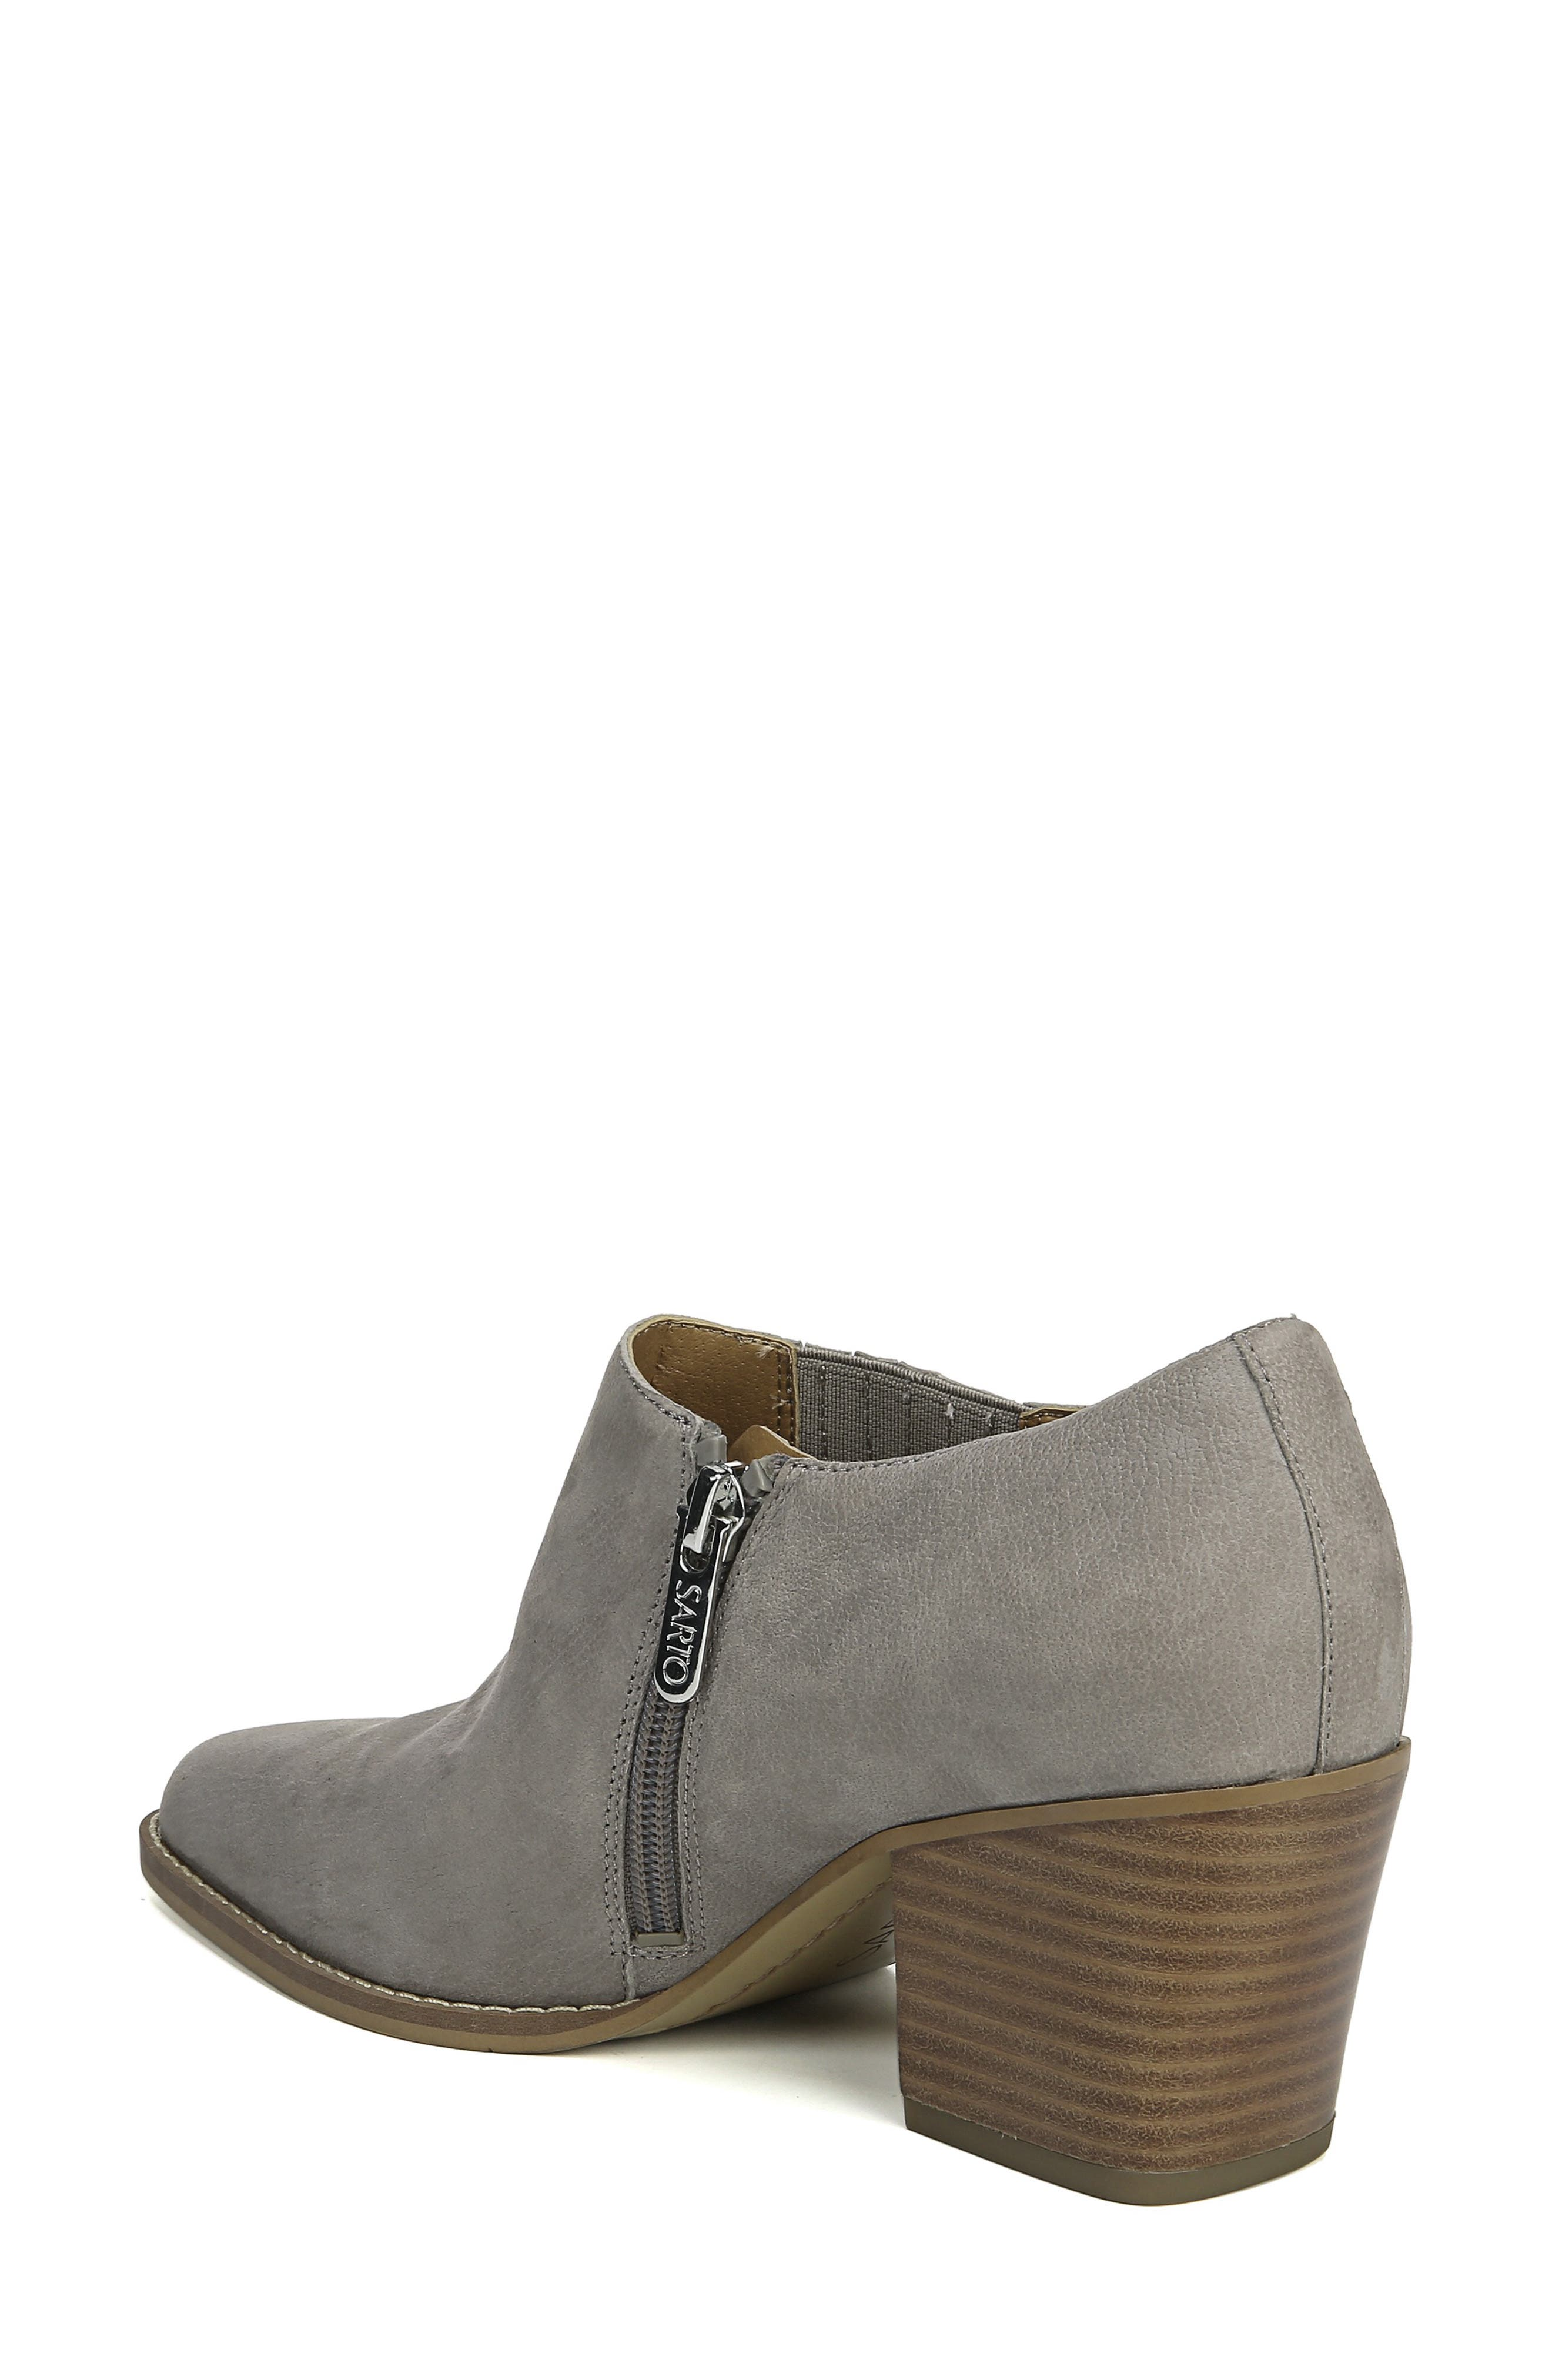 Camella Bootie,                             Alternate thumbnail 2, color,                             GREYSTONE NUBUCK LEATHER